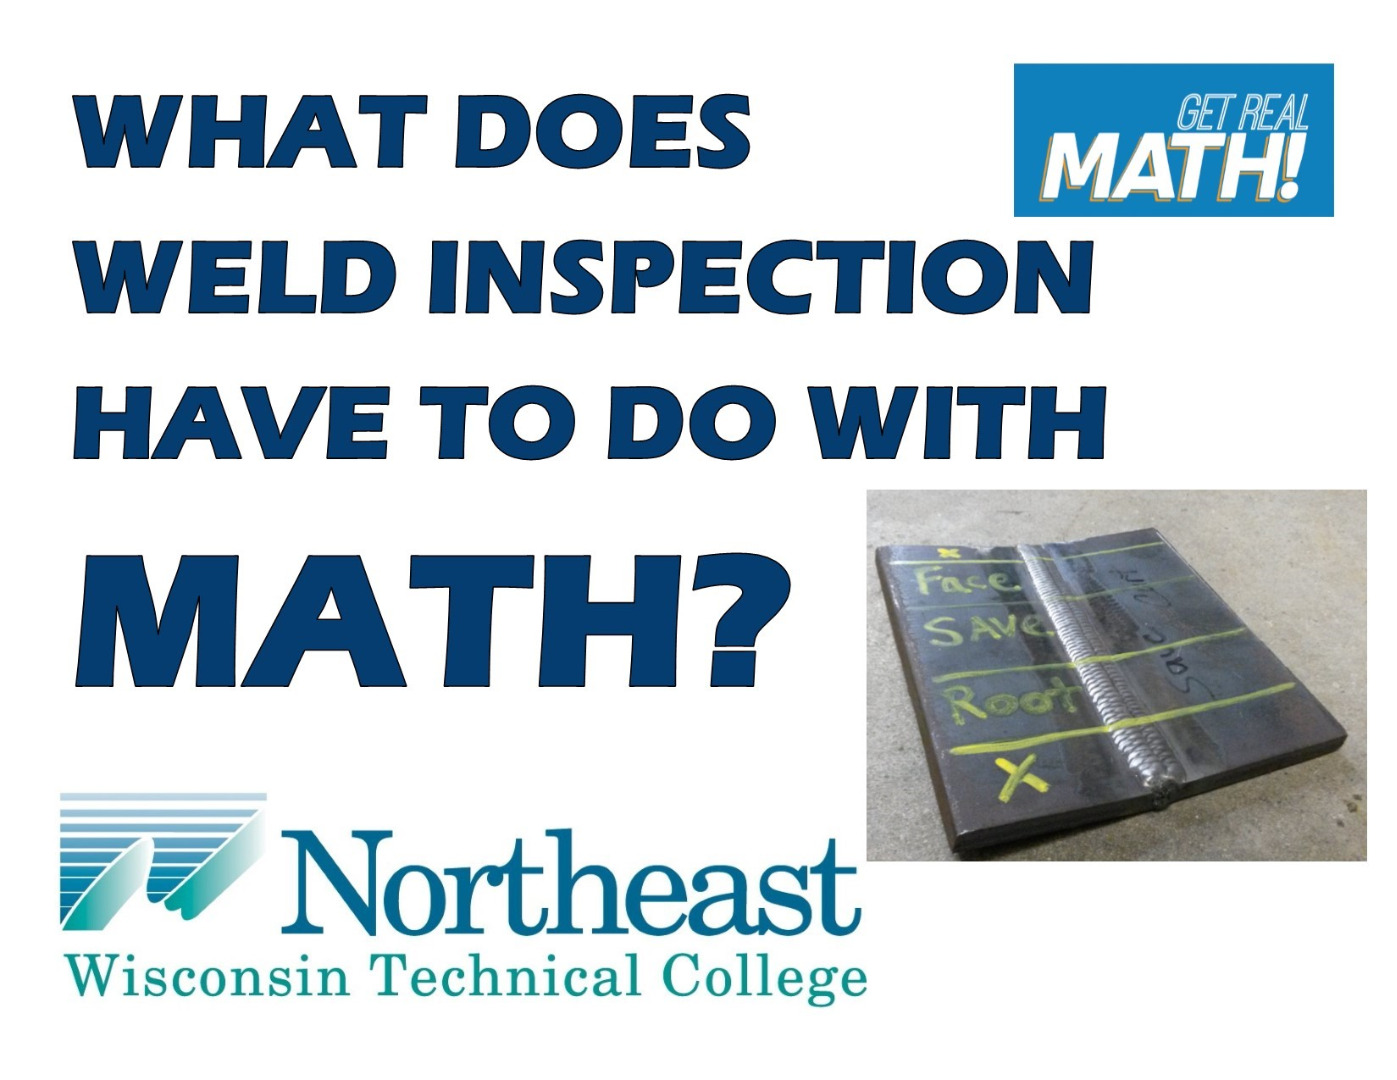 What does weld inspection have to do with math?